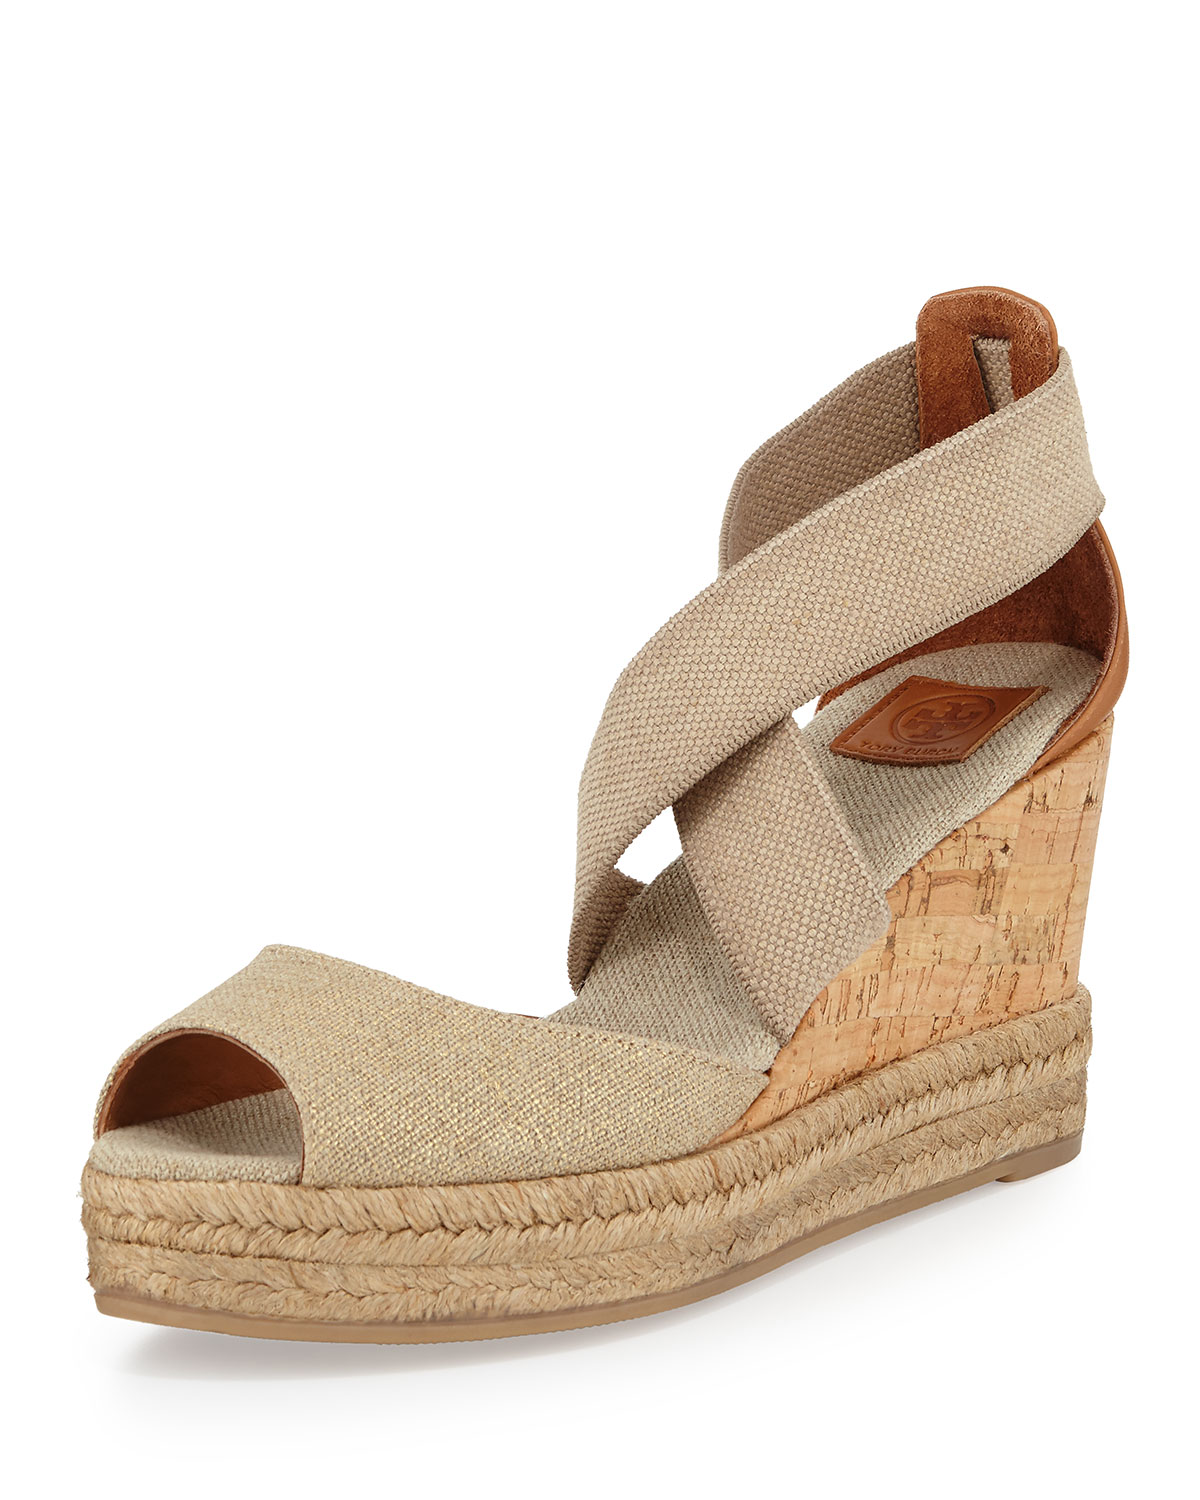 20cc4224e1f1 Tory Burch Peep-Toe Cork Wedge Sandal